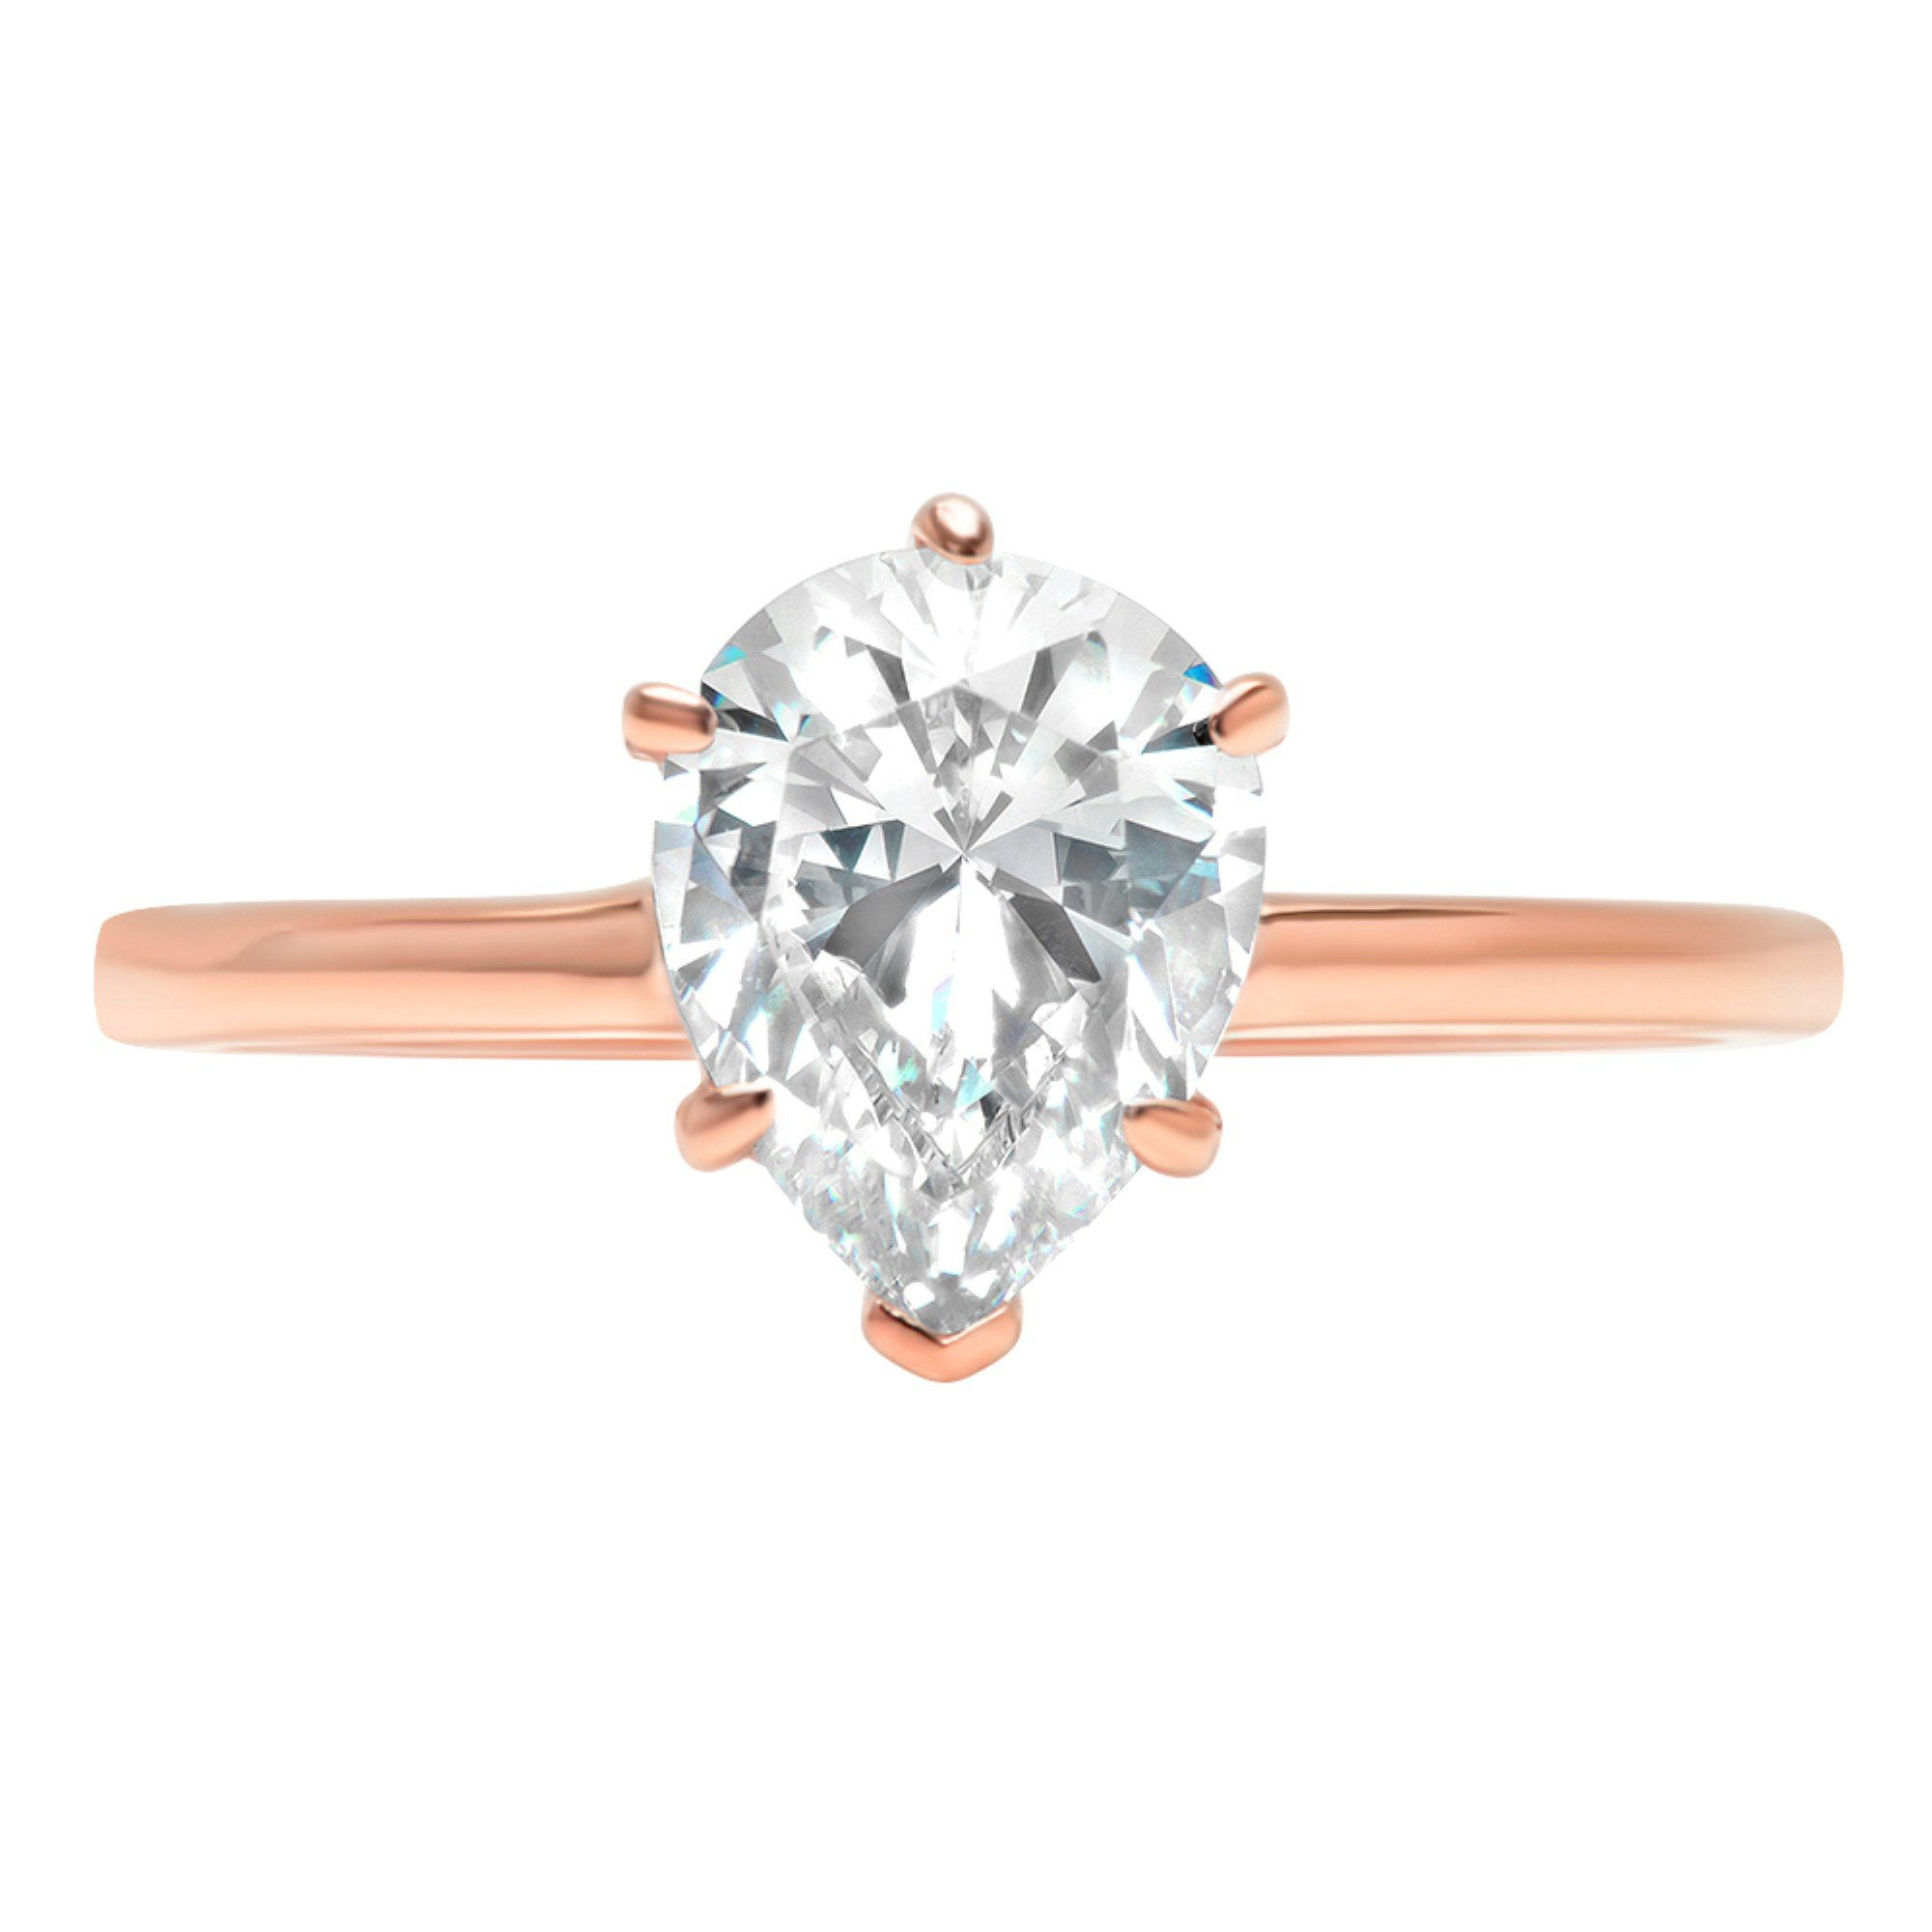 Pear Brilliant Cut Classic Solitaire Designer Wedding Bridal Statement Anniversary Engagement Promise Ring Solid 14k Rose Gold, 1.45ct, 8.25